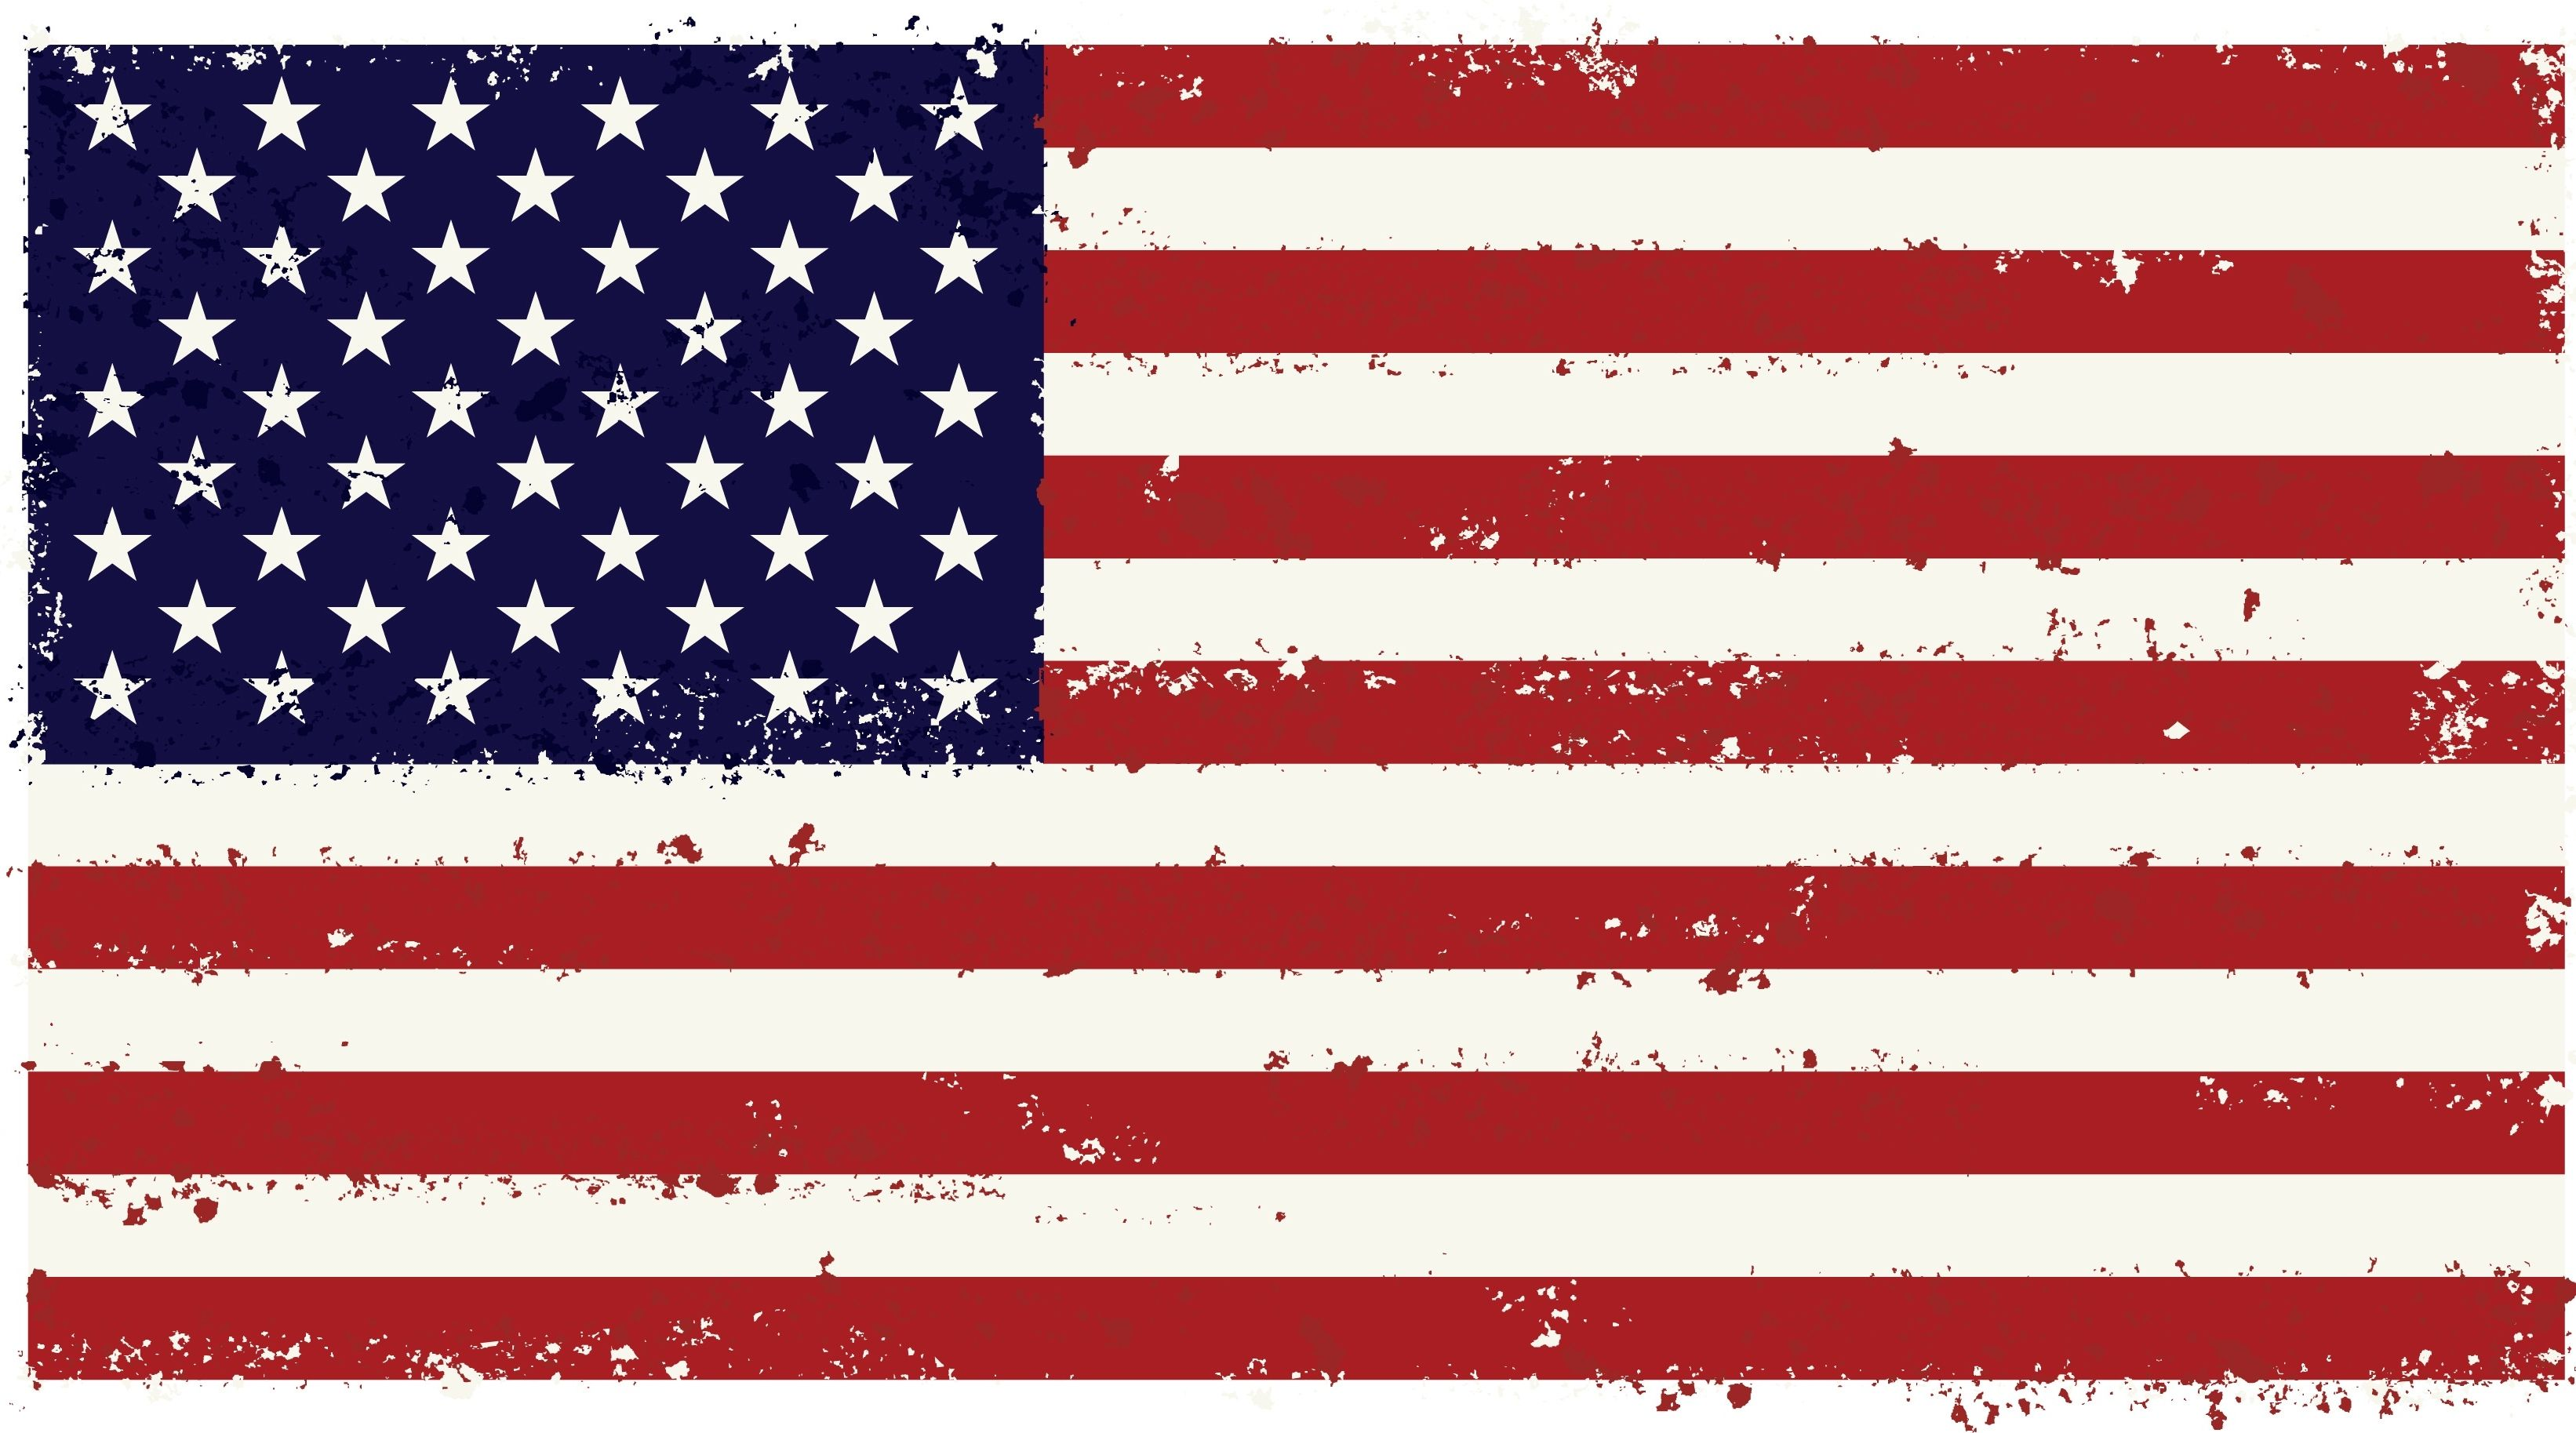 american-flag_tattered-jpg.79614